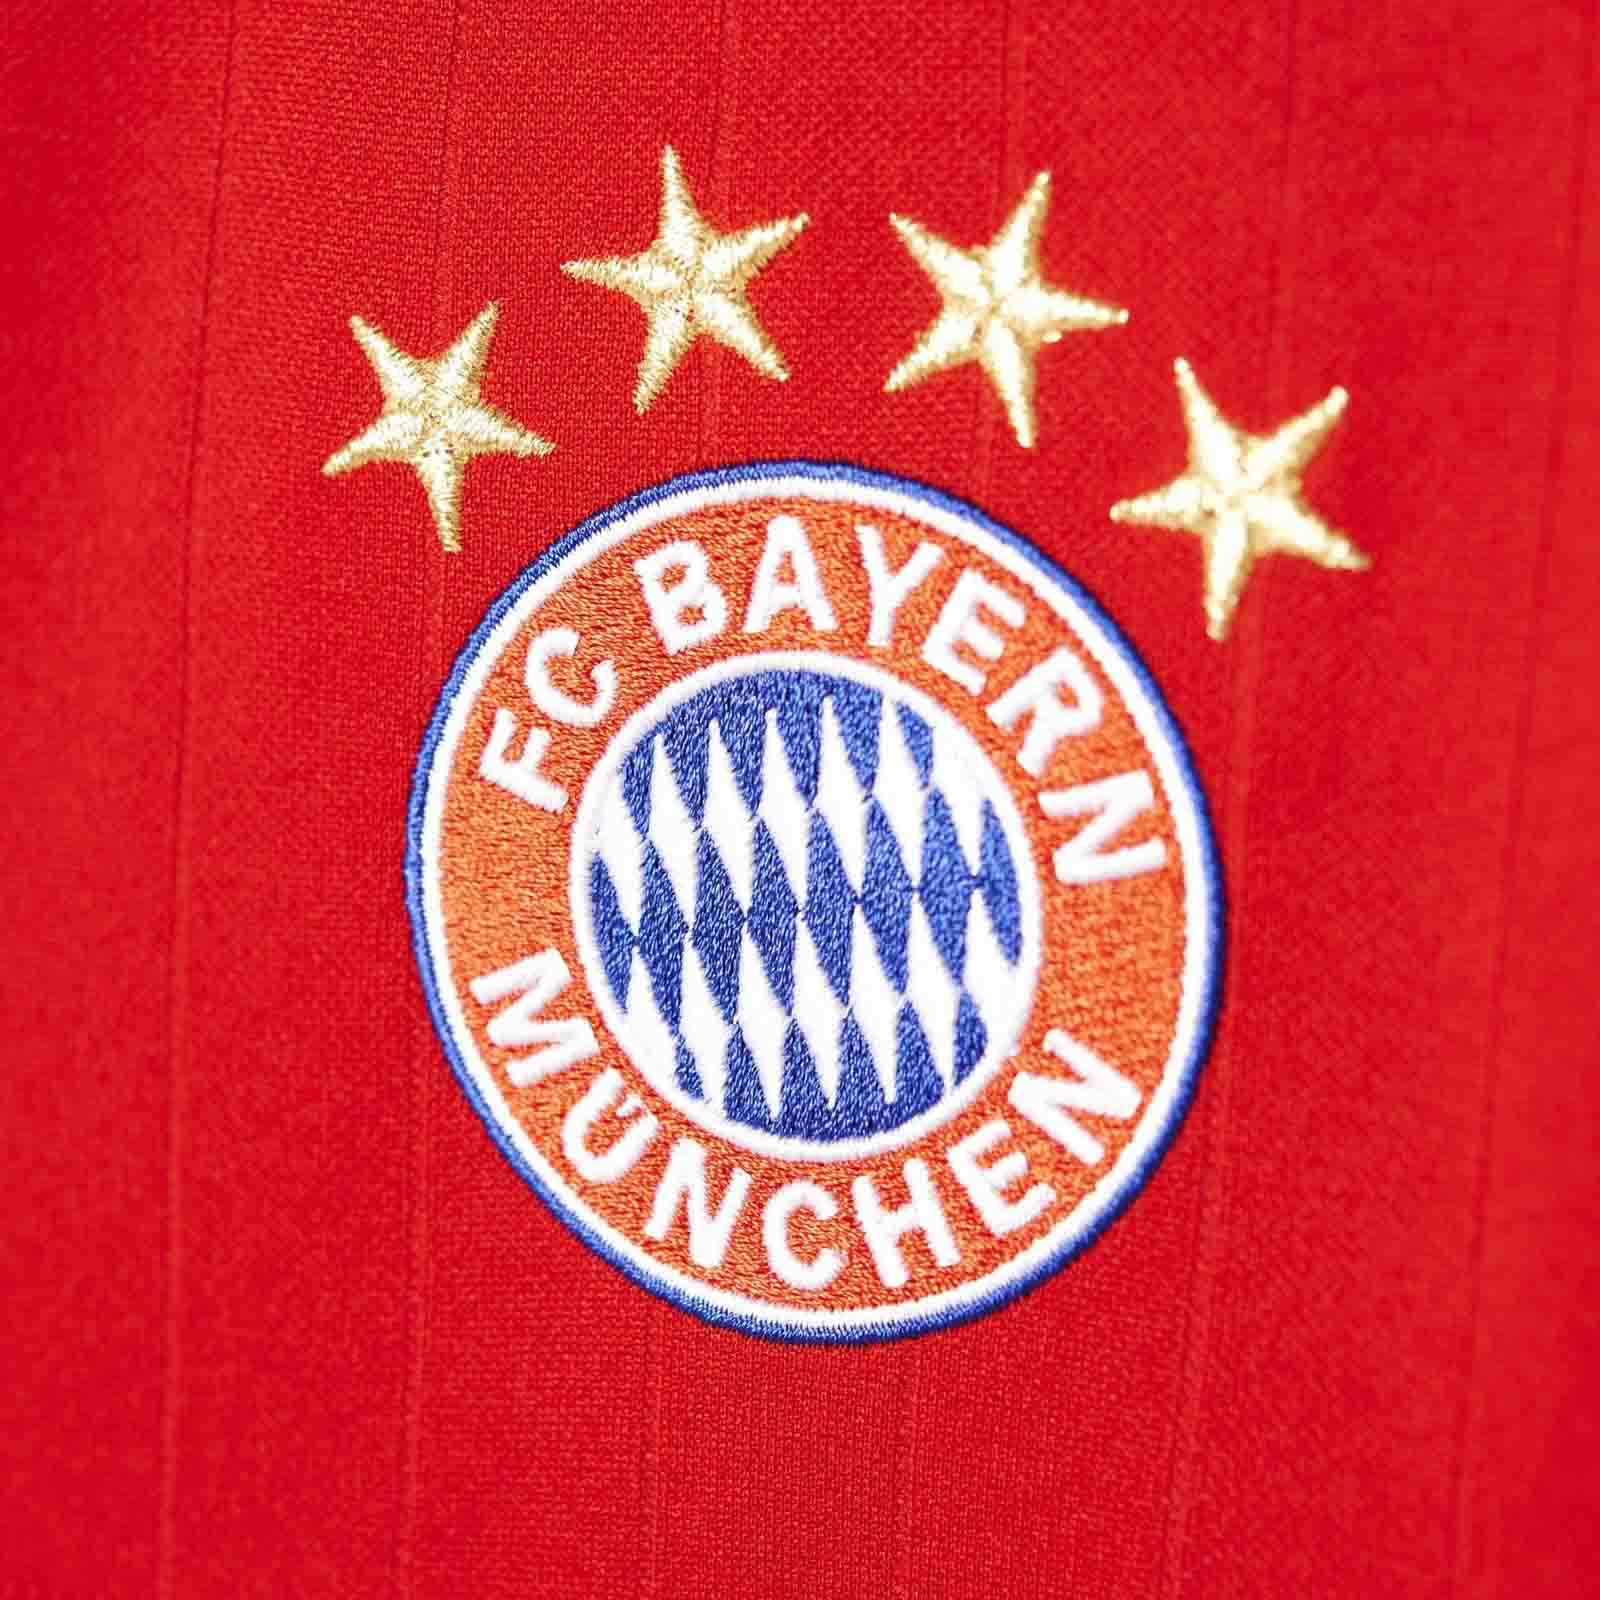 fc bayern m nchen 15 16 training shirts revealed footy. Black Bedroom Furniture Sets. Home Design Ideas